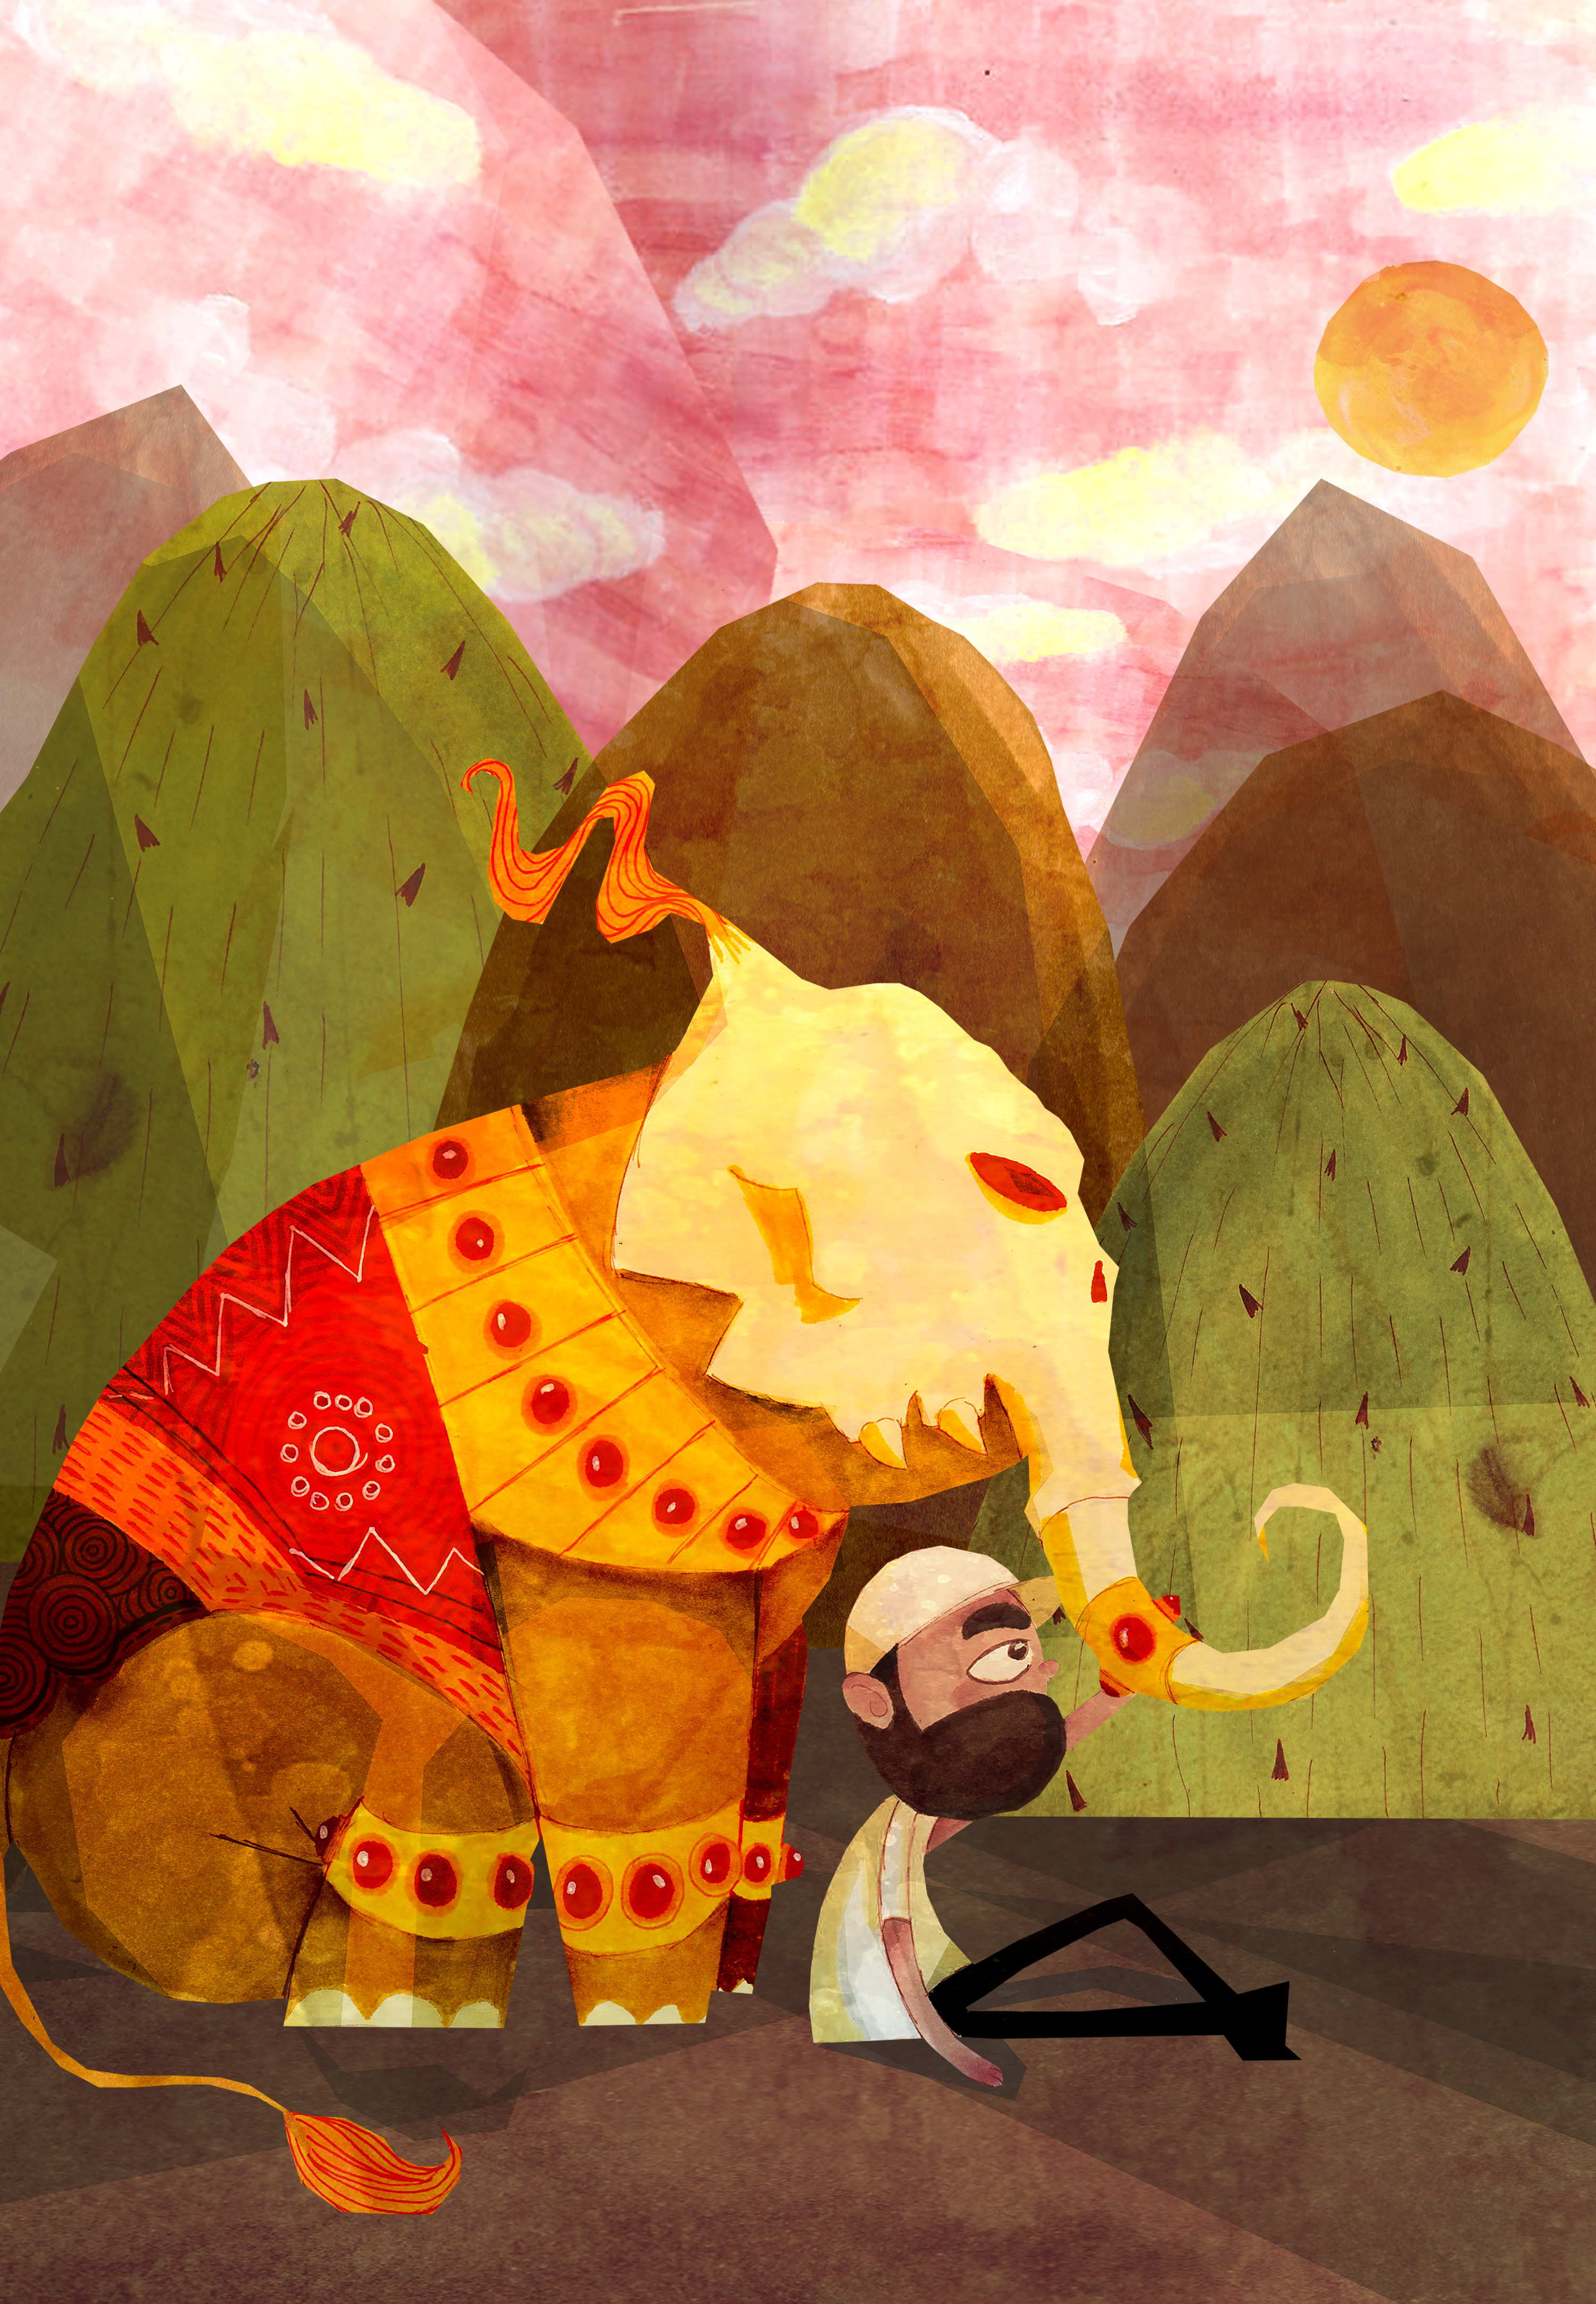 Boo and The Elephant